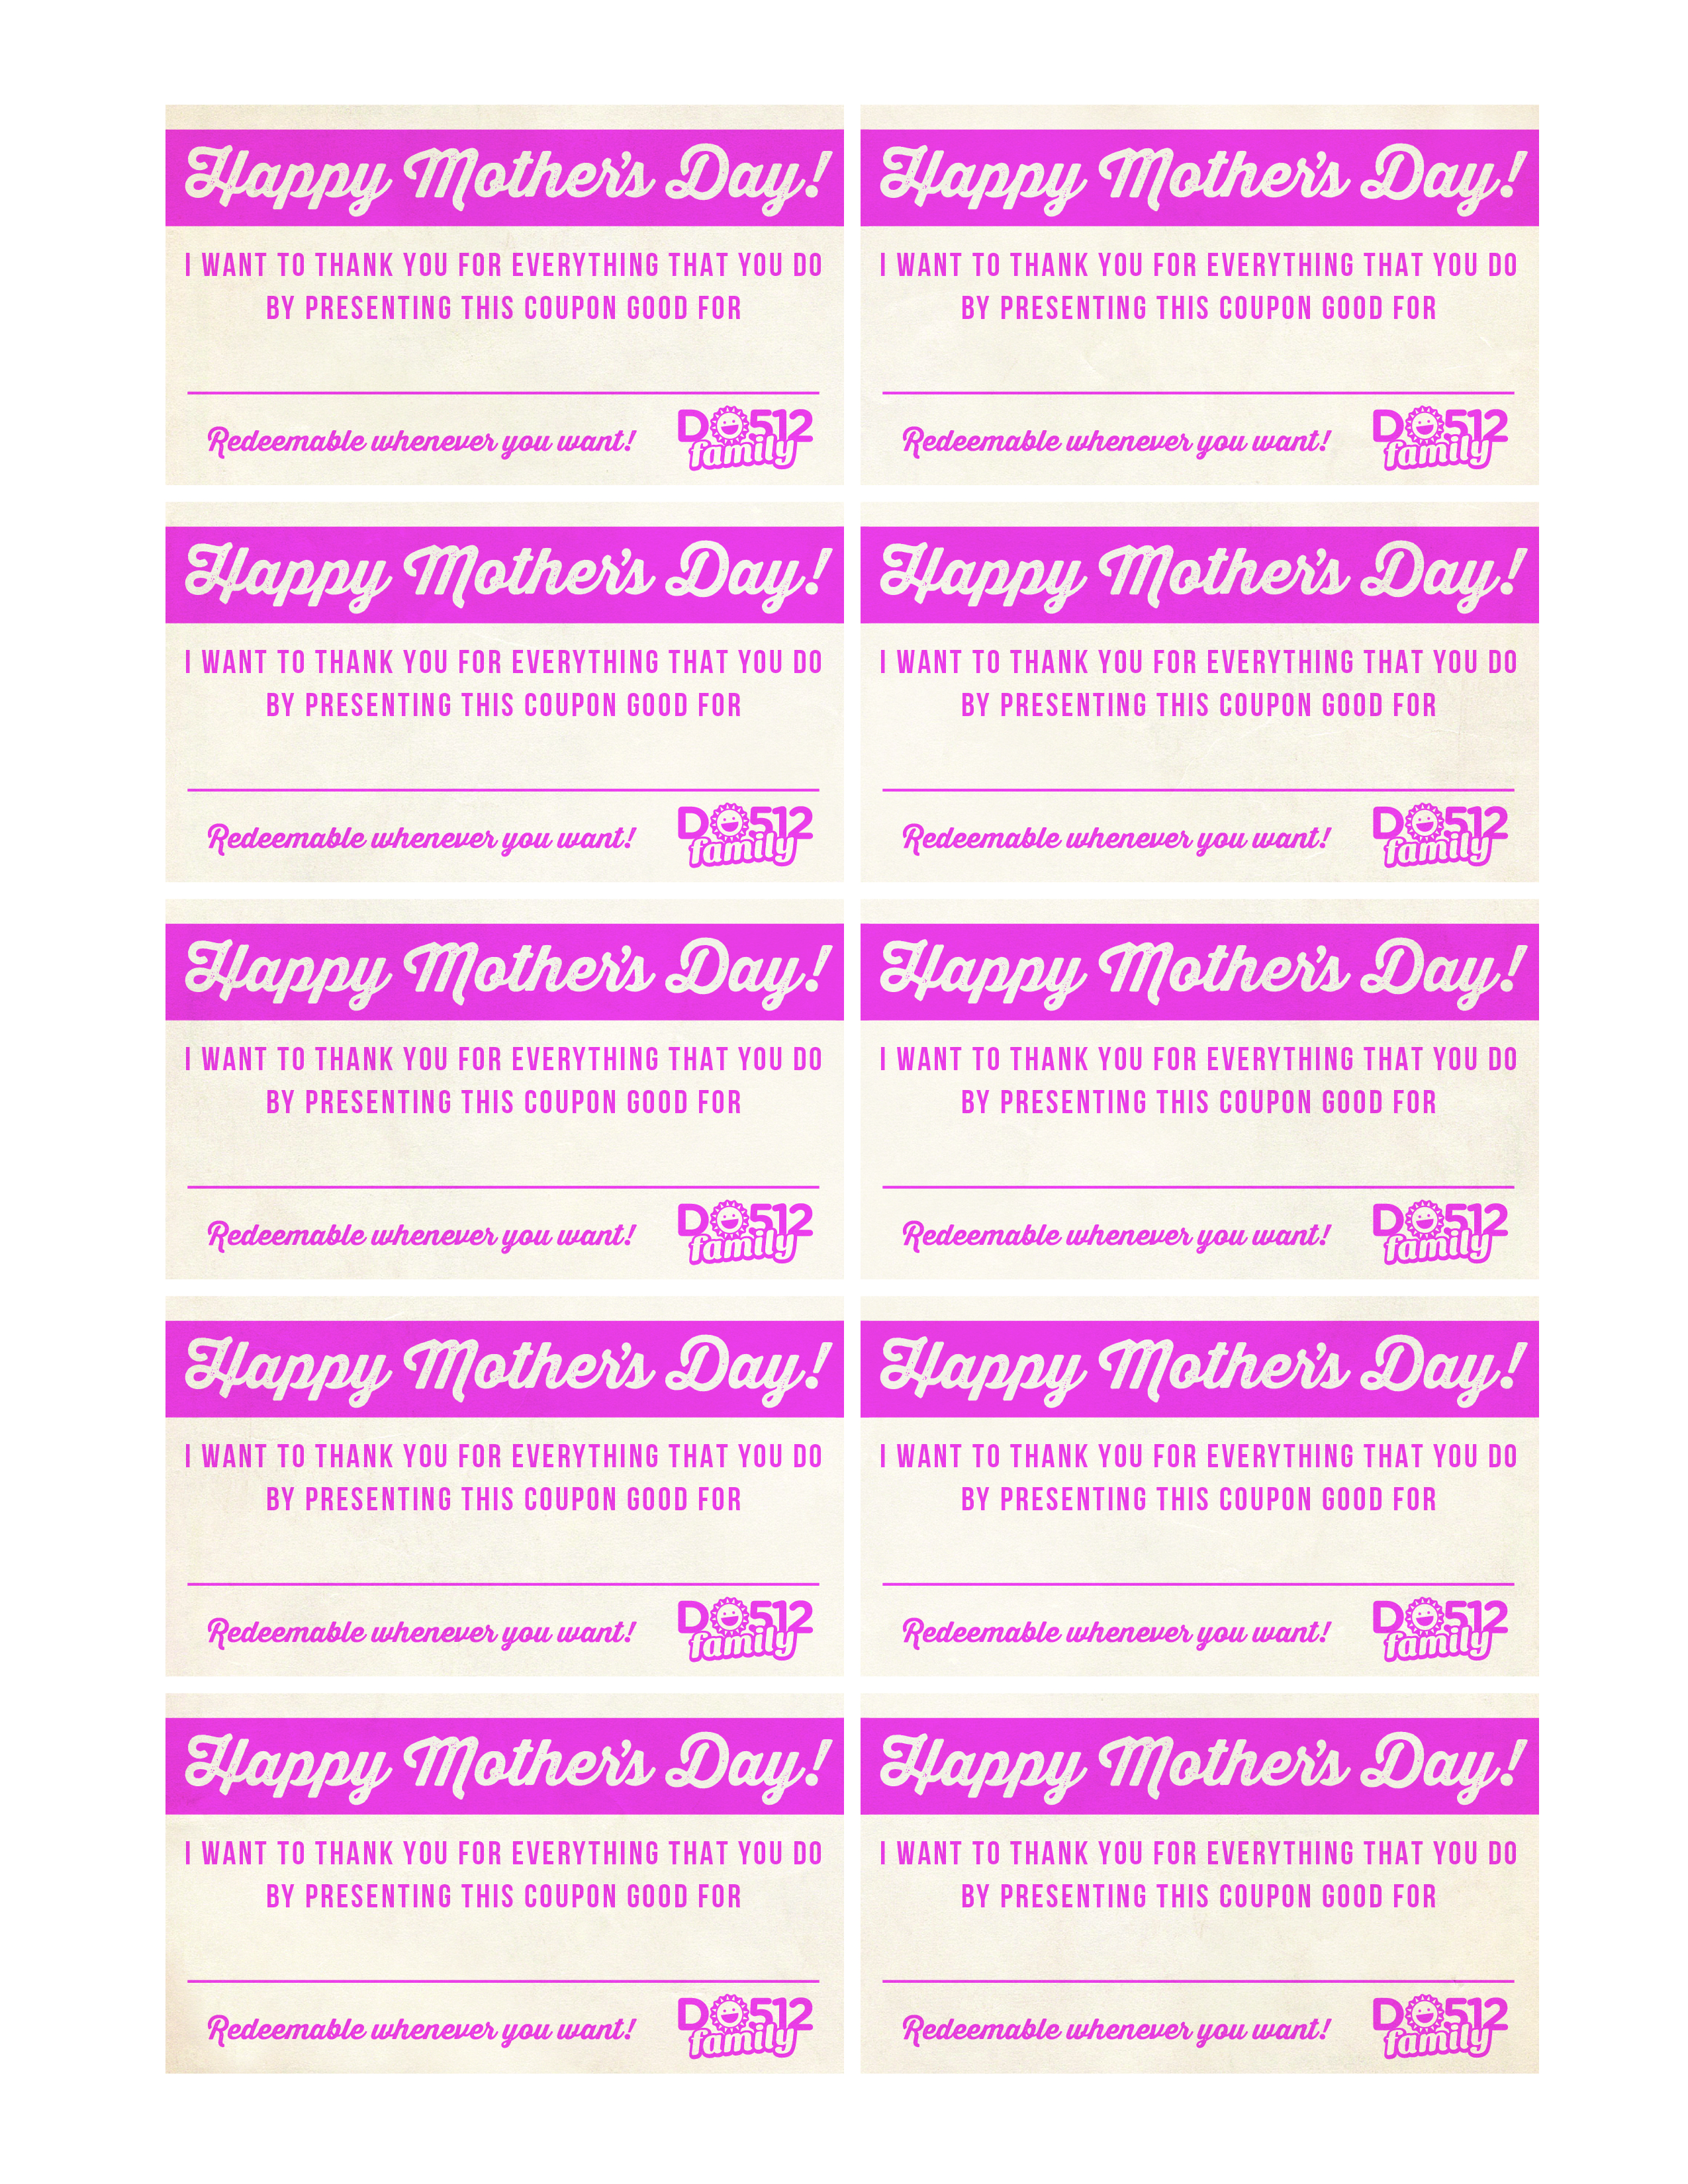 Mother's day coupons printable